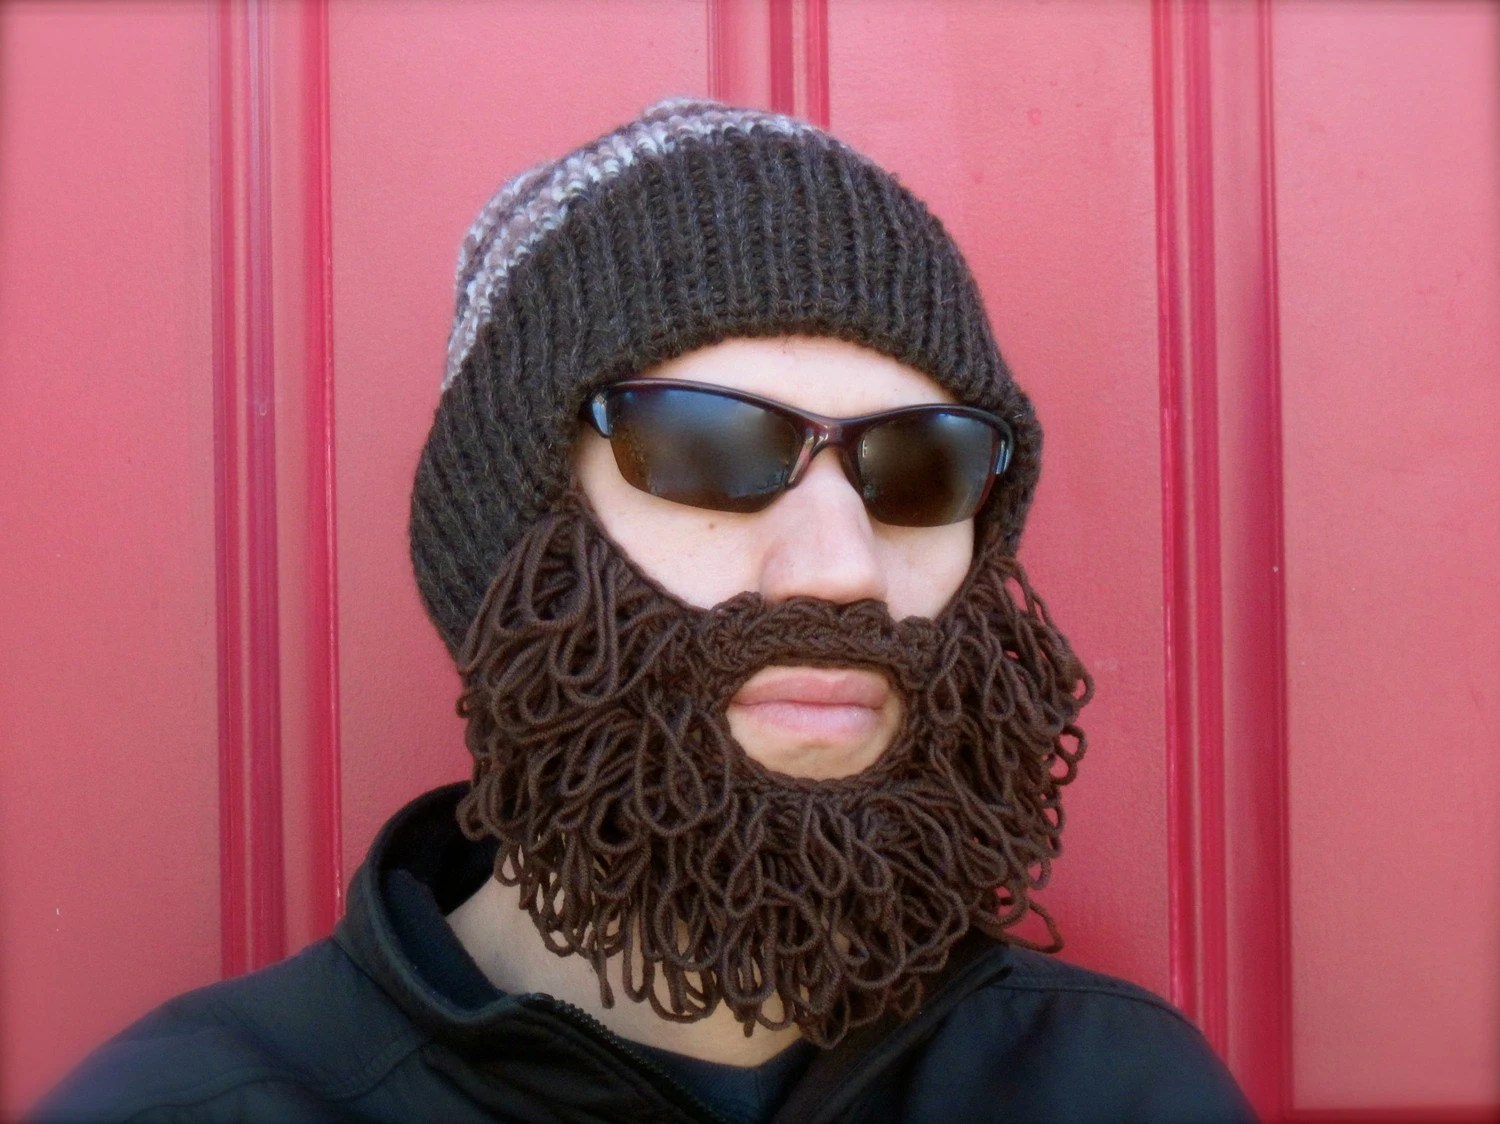 shaggy bearded stocking hat - superwash wool hat with extra fine merino wool beard